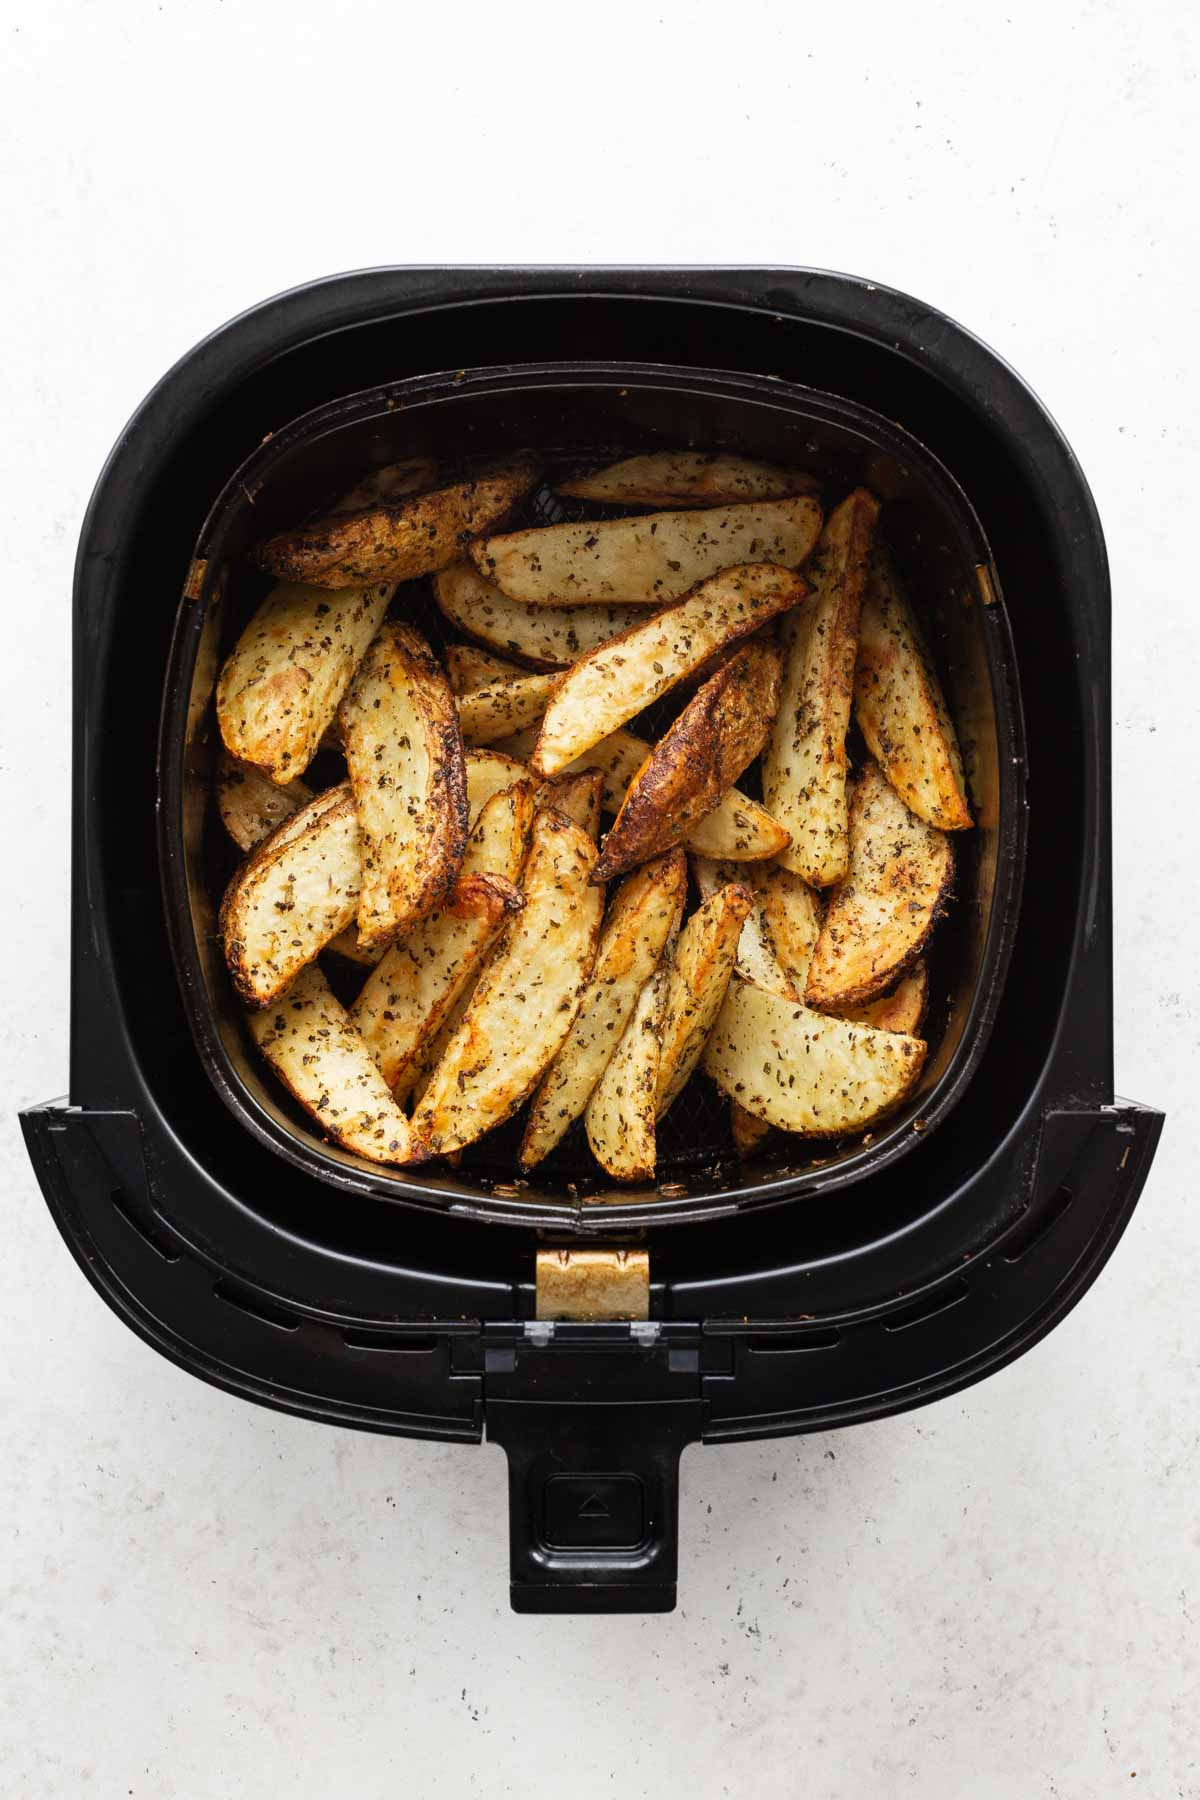 Overhead view of air fried potato wedges in an air fryer basket.